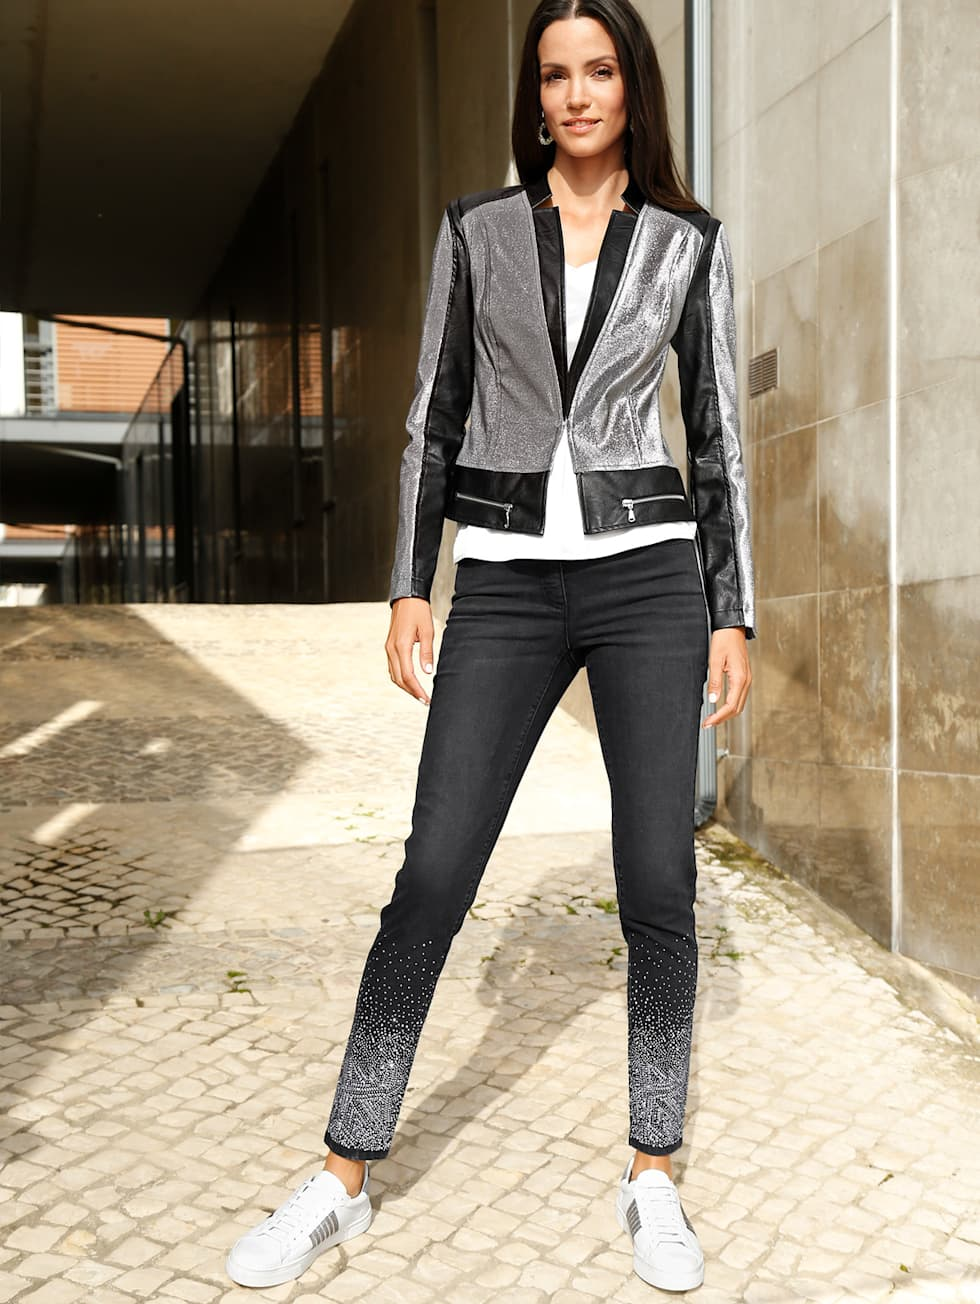 Home_HW21_KW42-44_Outfitteaser_Trendoutfit_Shiny Star